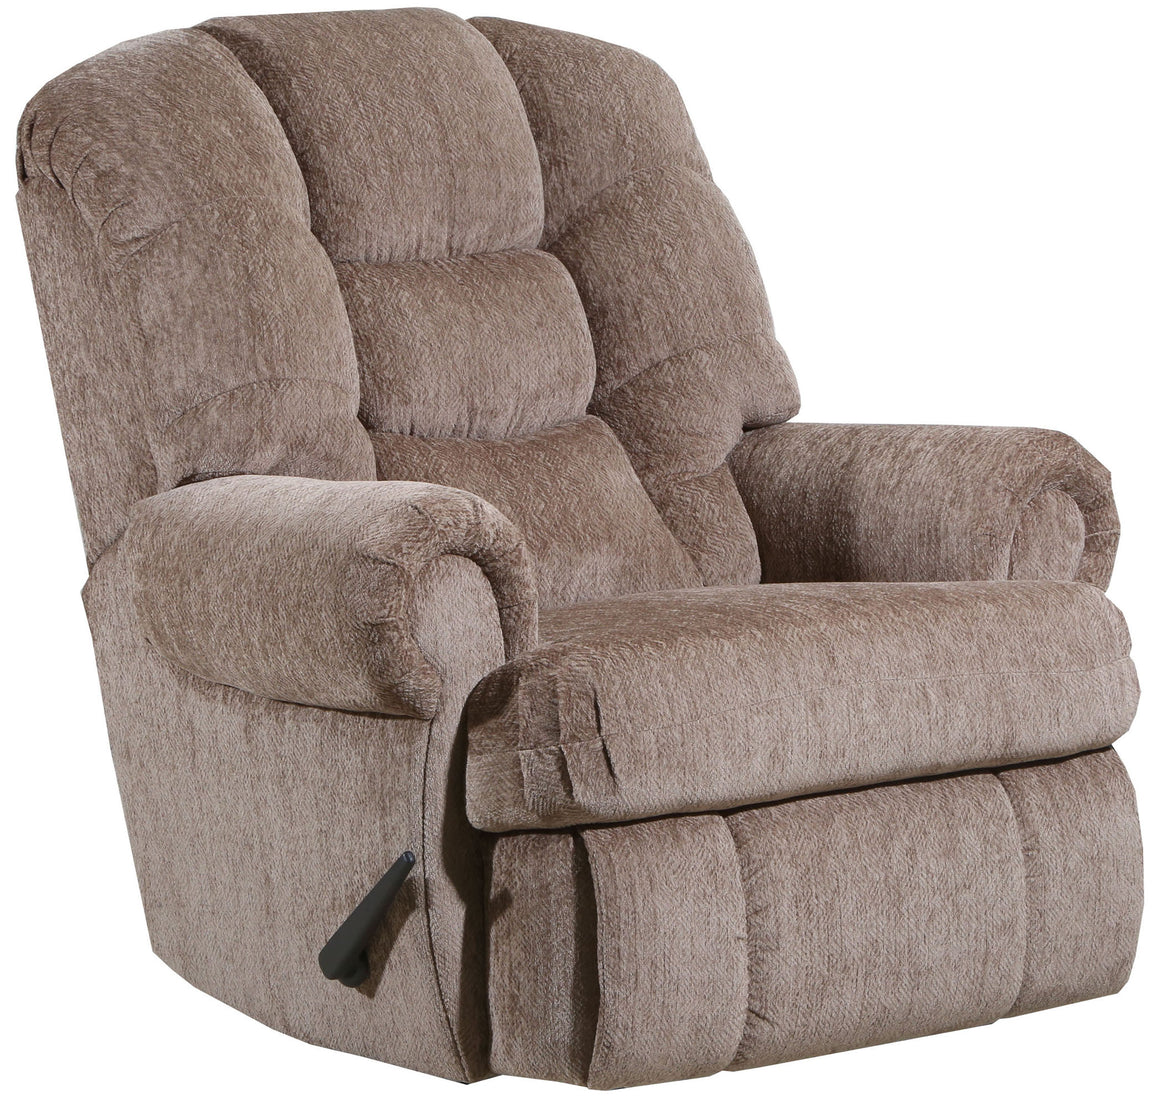 4501 Comfort King Chaise Wallsaver Recliner - Lark